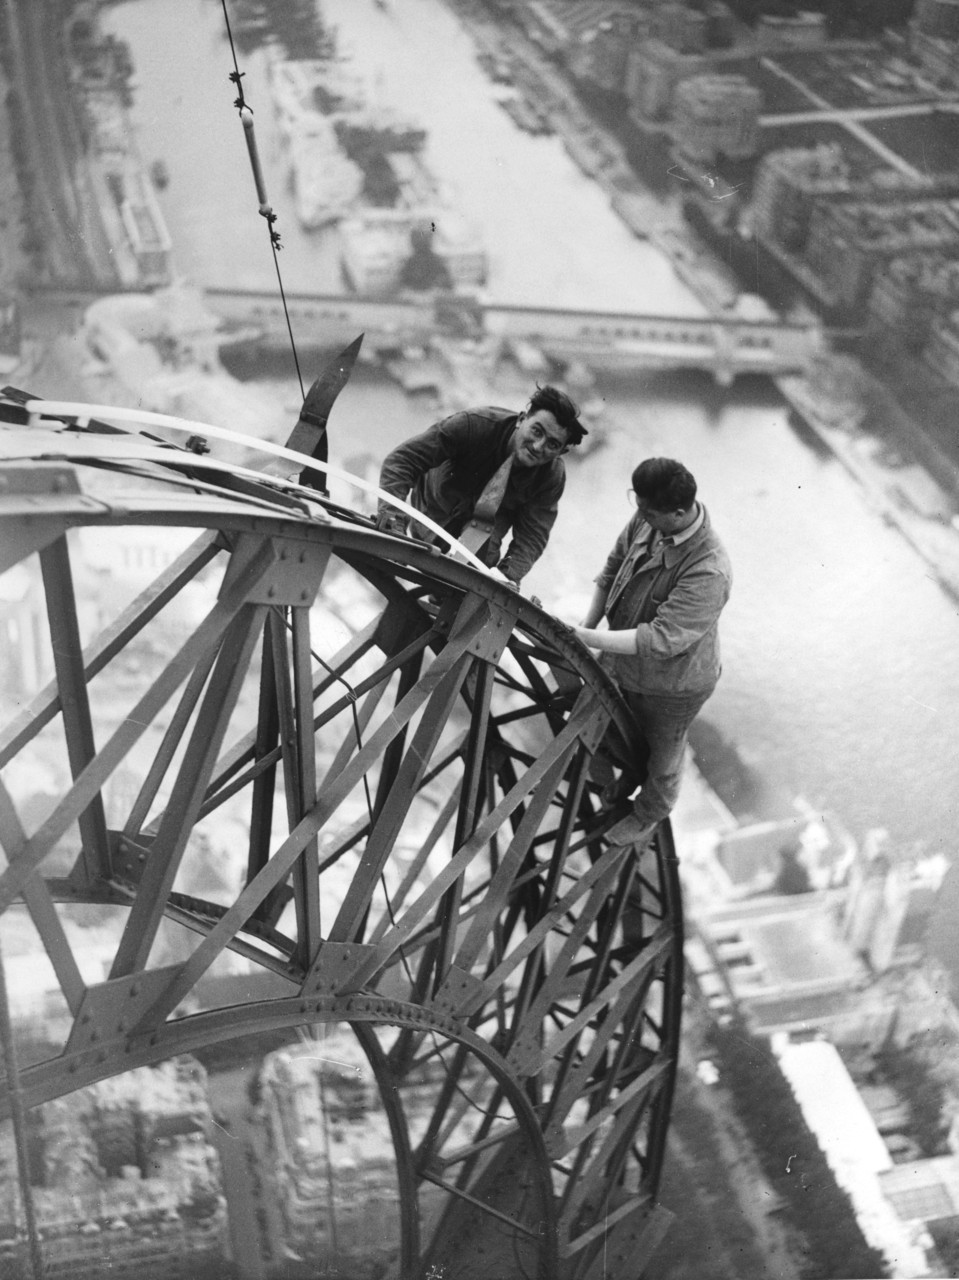 Electricians working on the Eiffel Tower, Paris, France, 1937